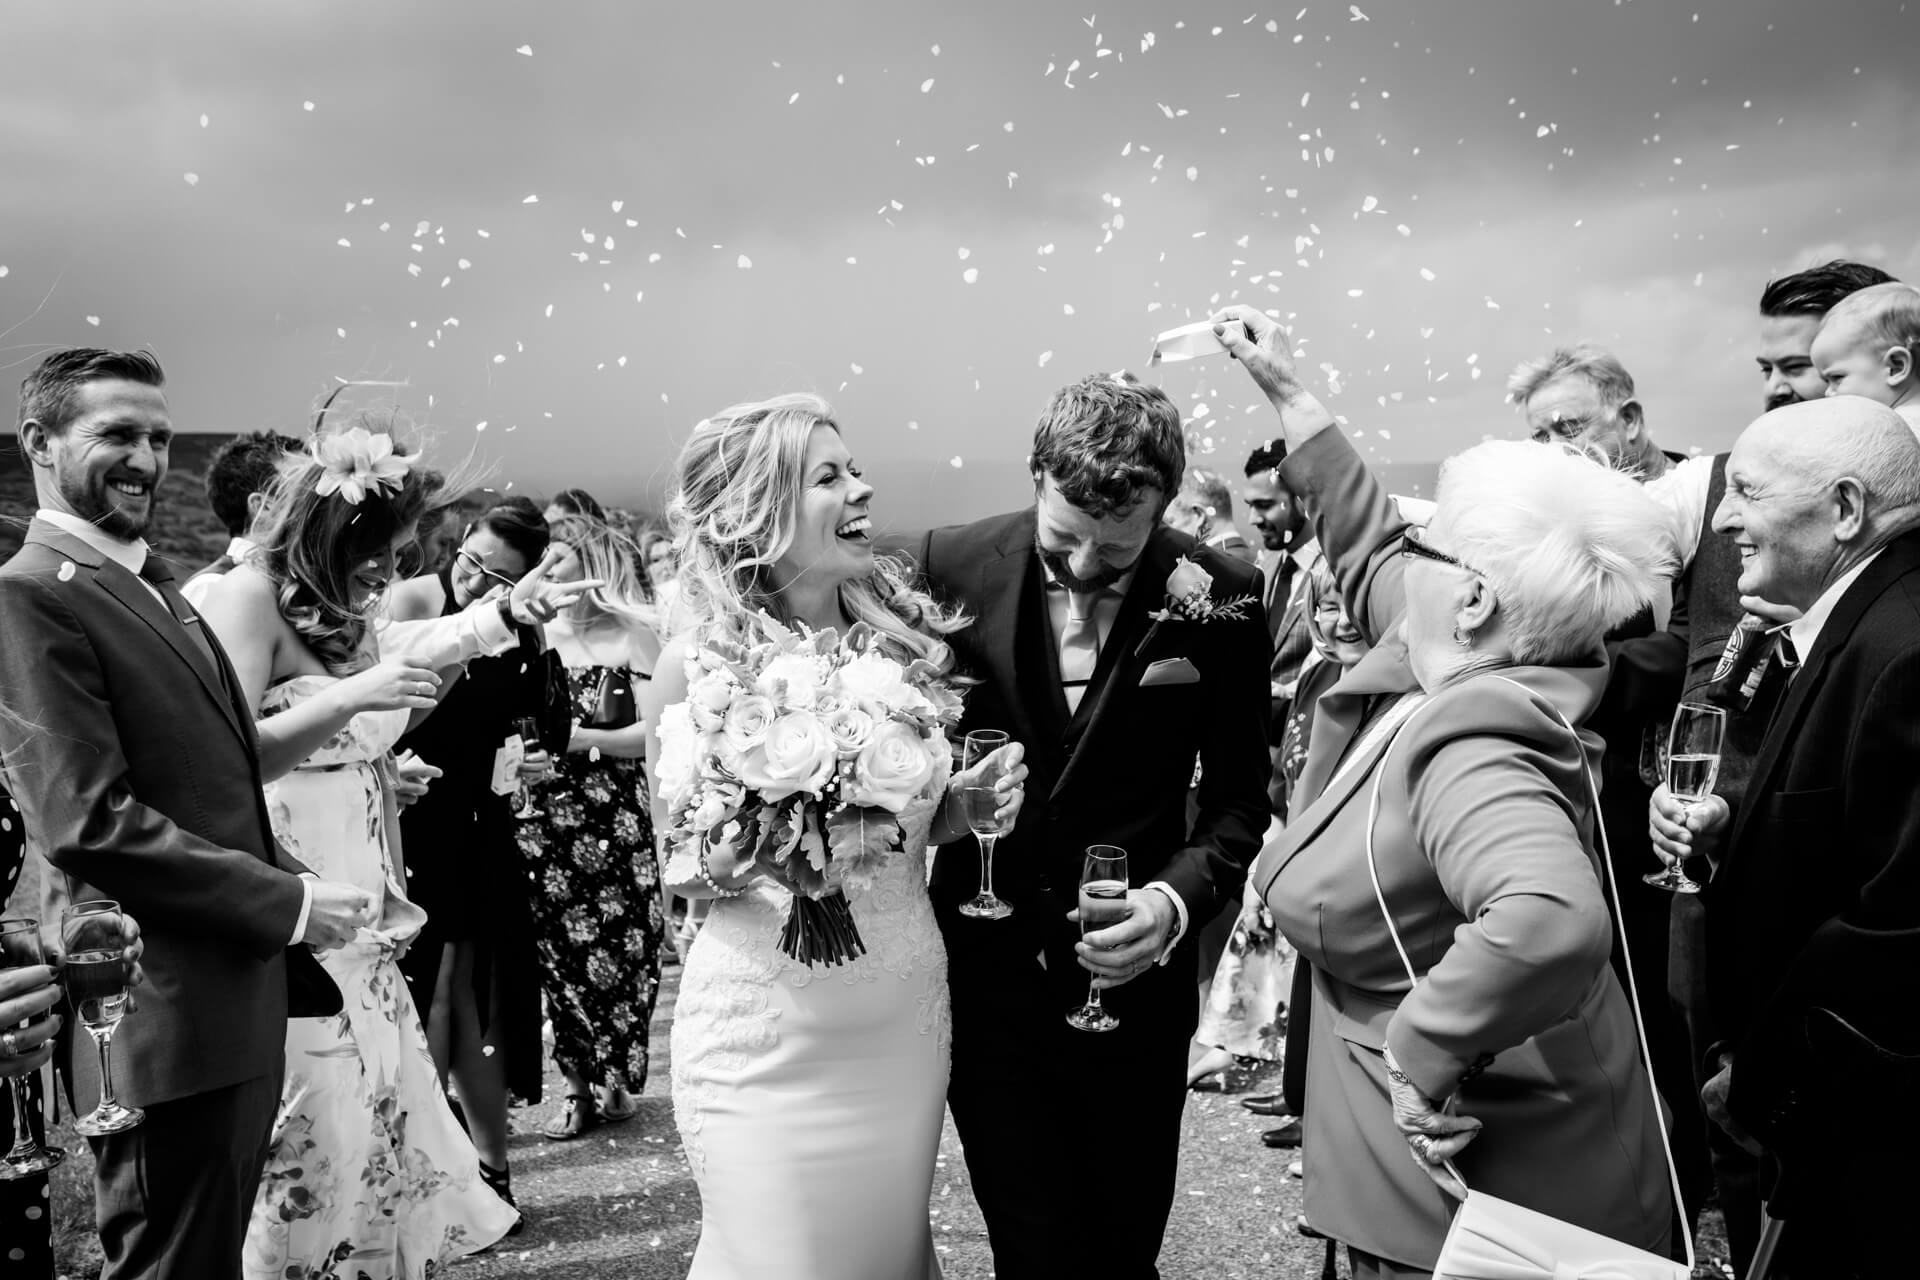 grandma showered the couple with confetti